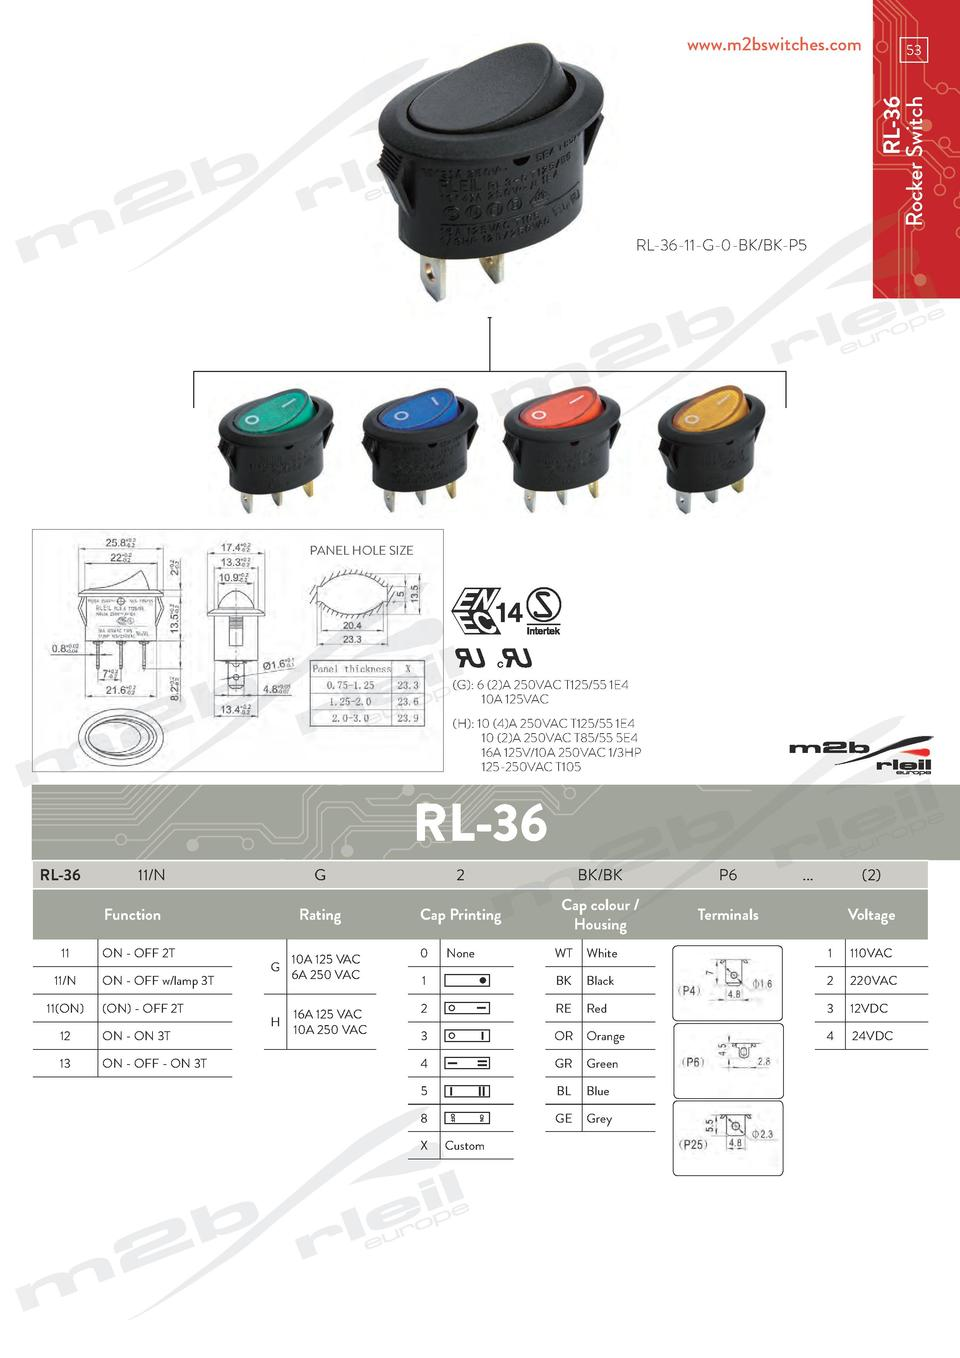 www.m2bswitches.com  RL-36 Rocker Switch  53  RL-36-11-G-0-BK BK-P5  PANEL HOLE SIZE   G   6  2 A 250VAC T125 55 1E4   10A...